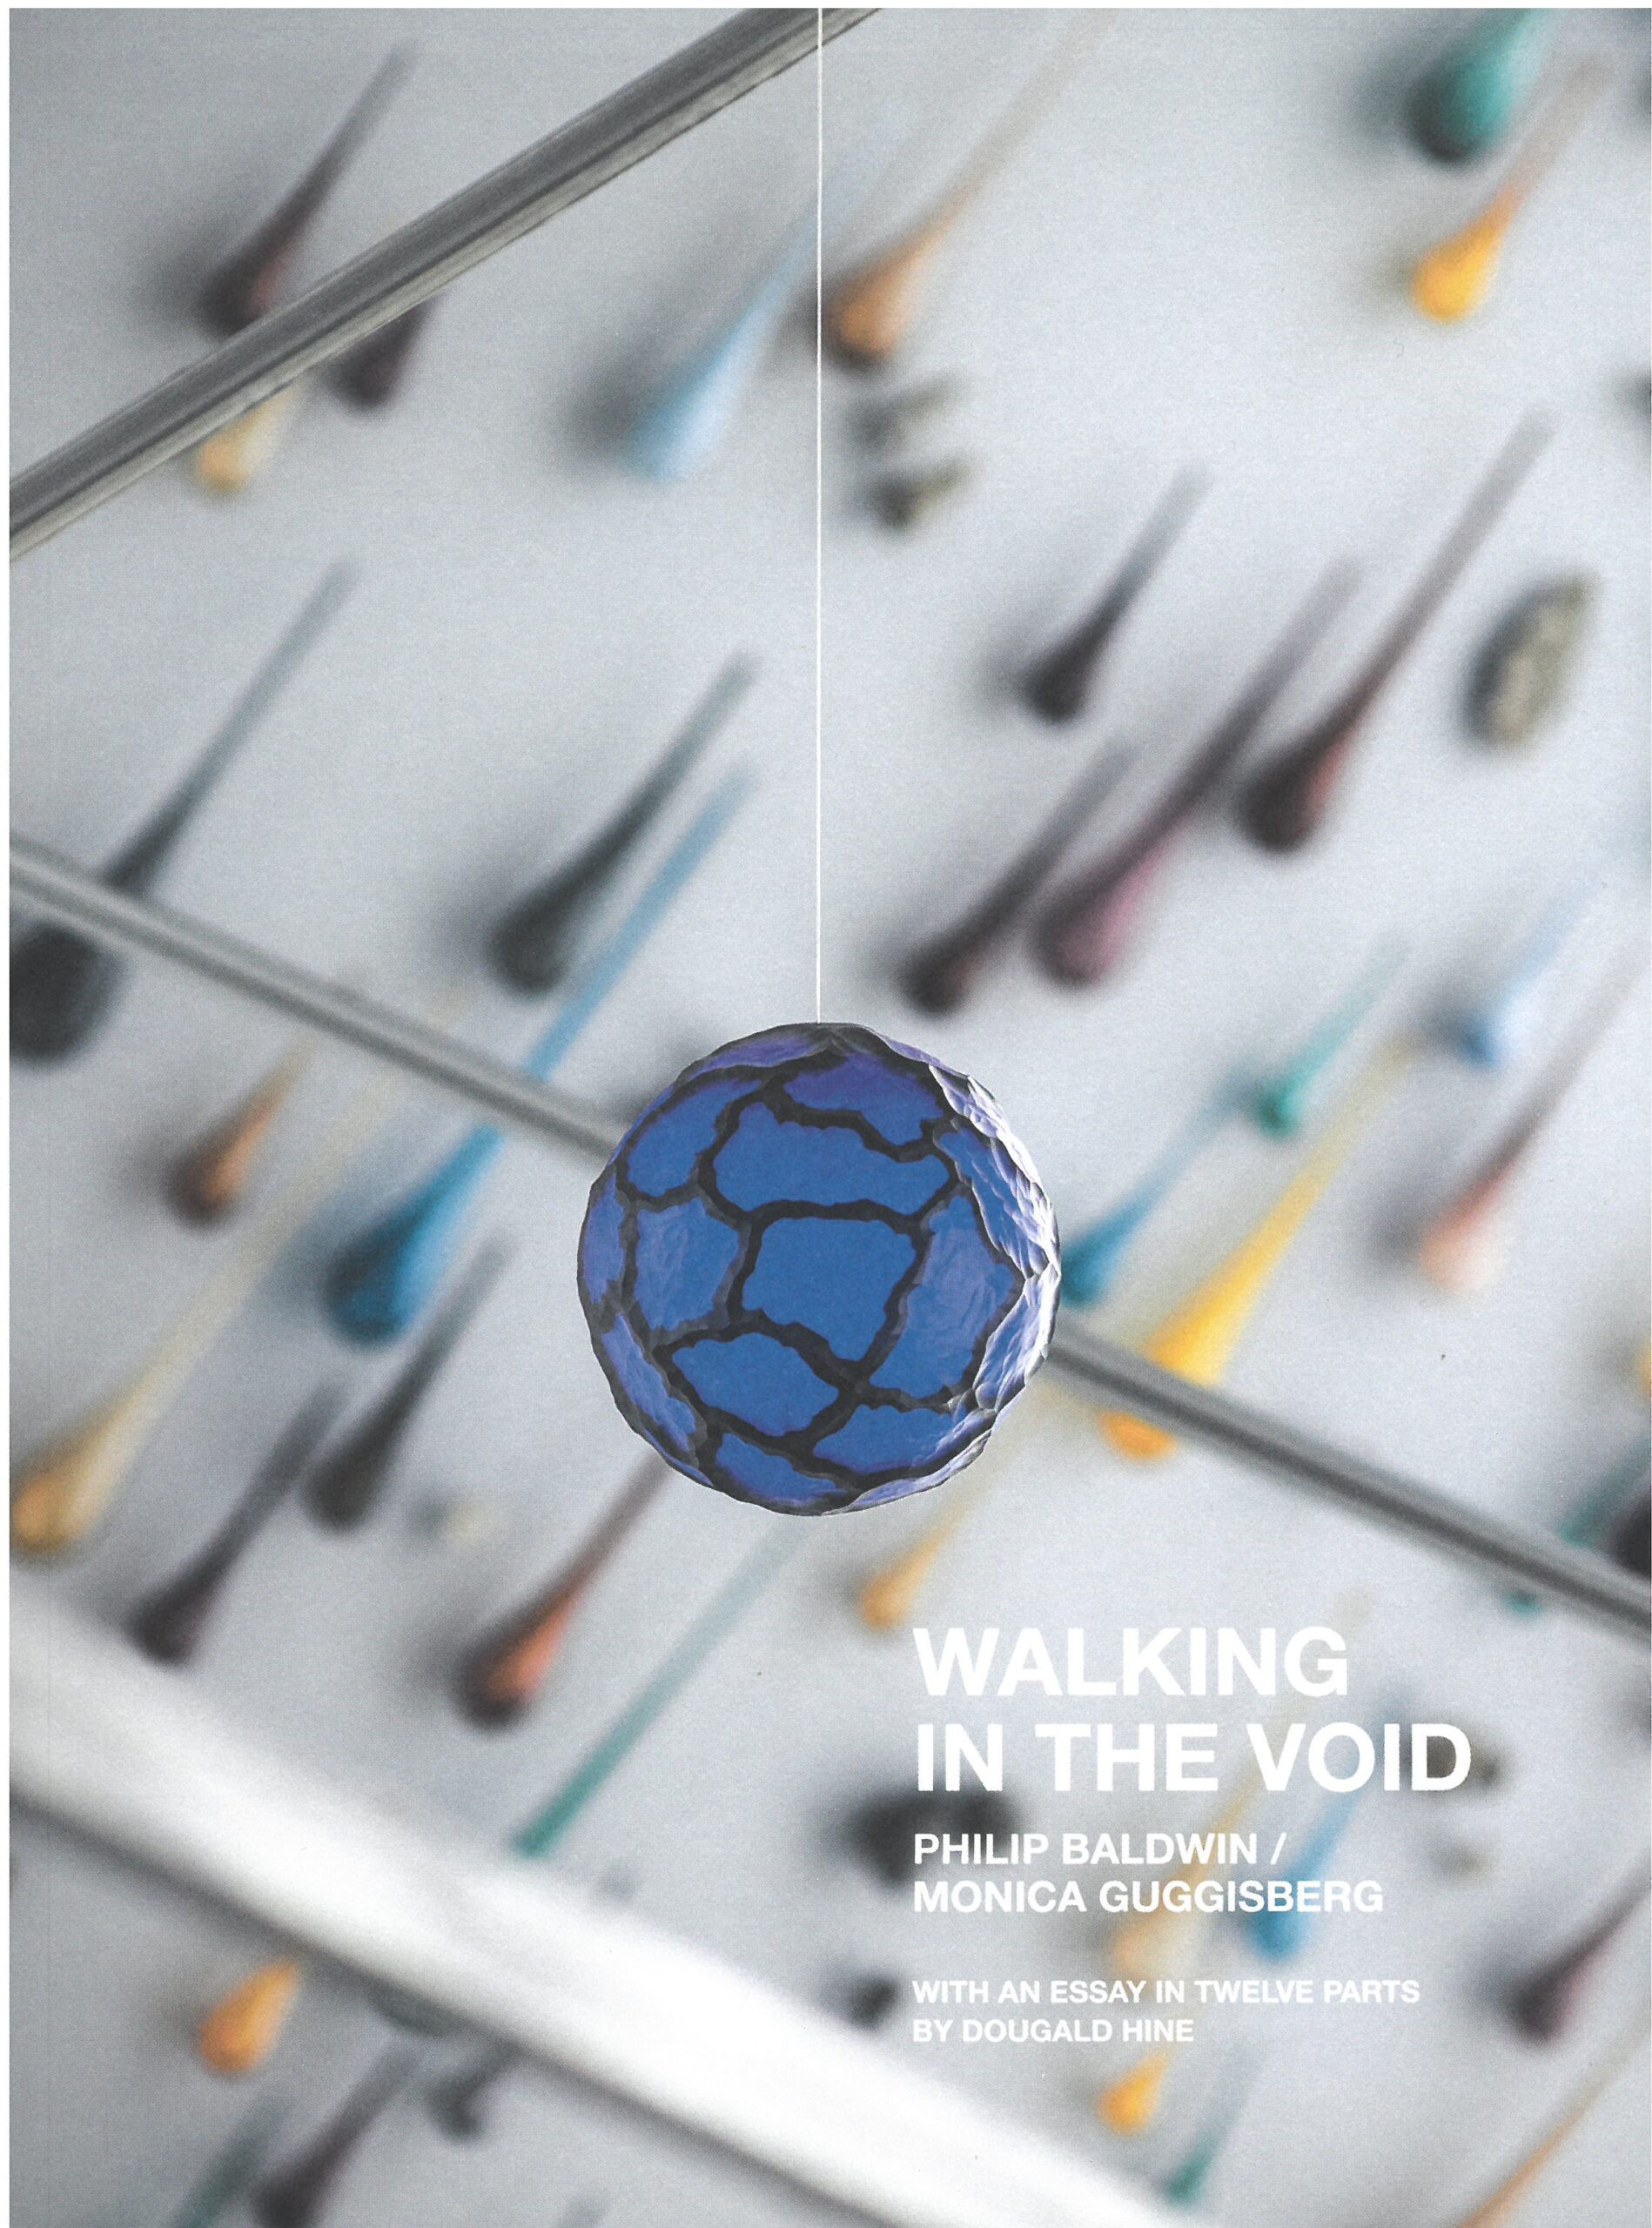 Walking in the Void katalog